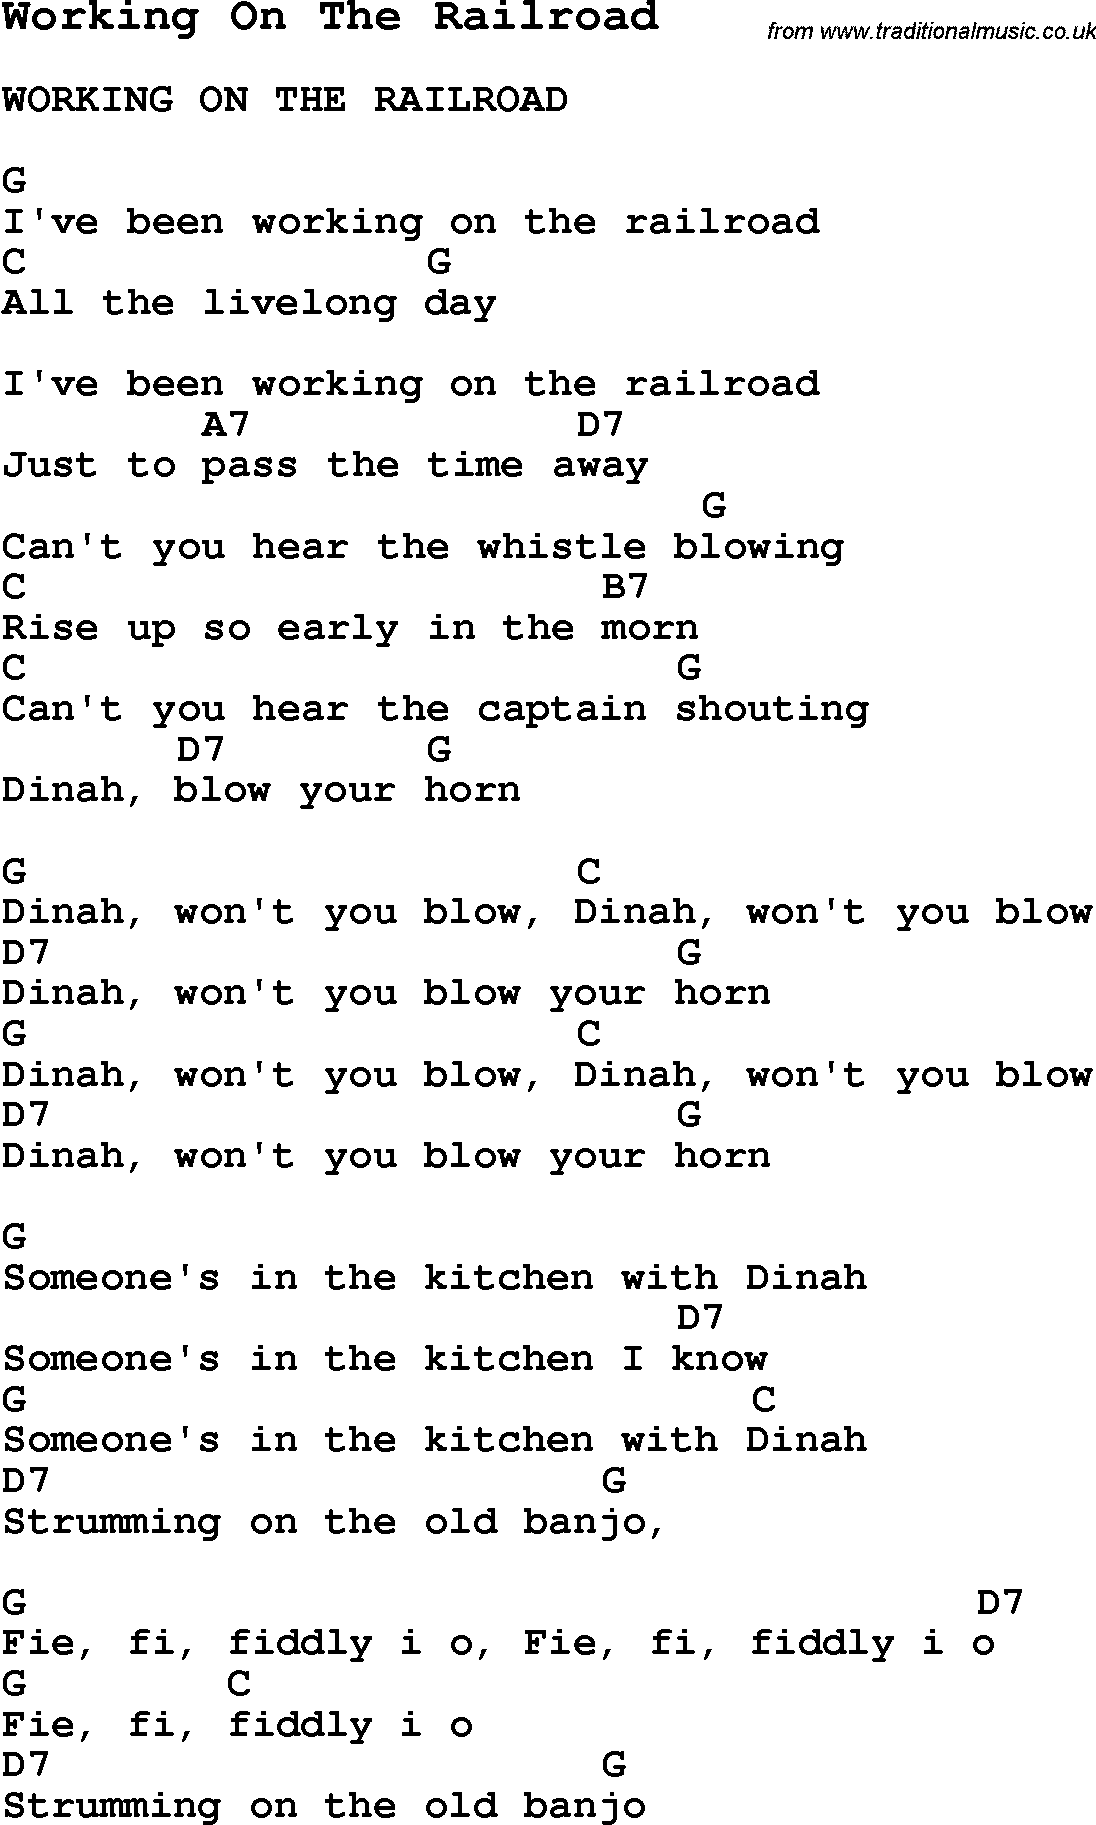 Summer Camp Song, Working On The Railroad, with lyrics and chords ...